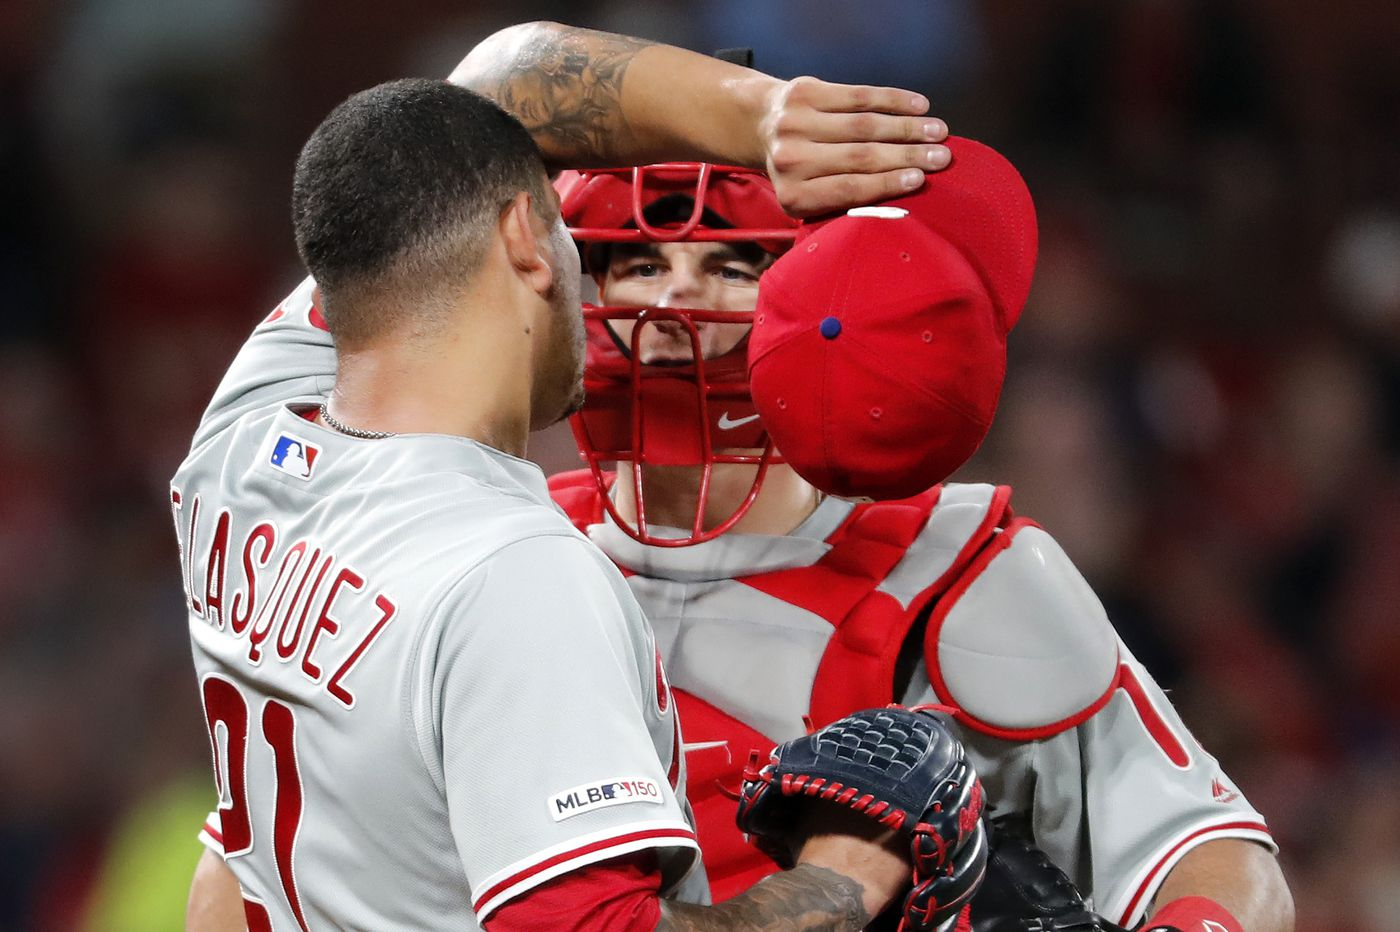 Vince Velasquez doesn't follow catcher J.T. Realmuto's lead, serves up three homers in Phillies' loss to Cardinals